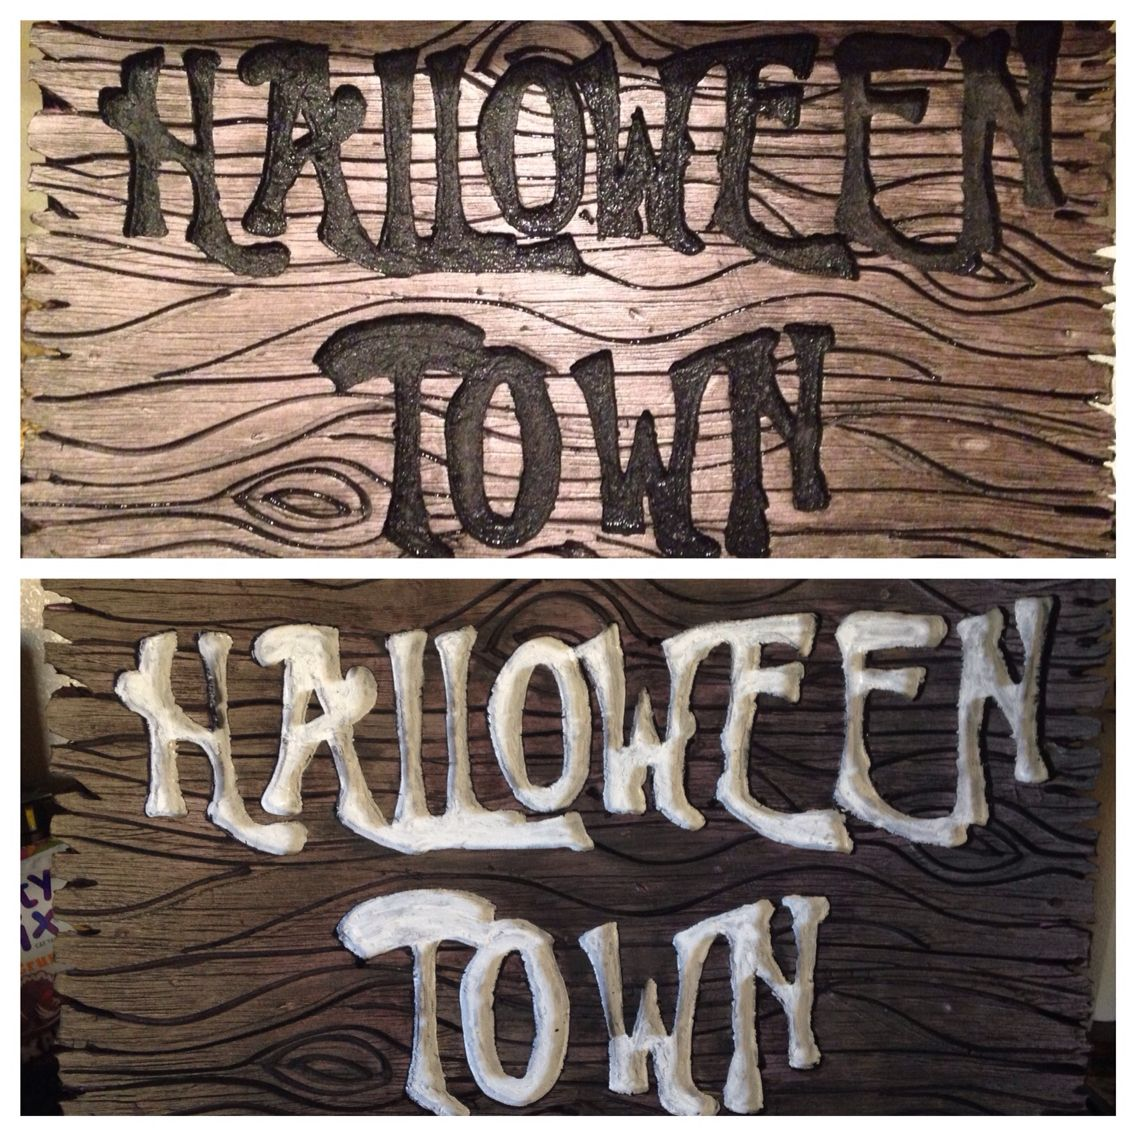 my halloween town sign for my nightmare before christmas halloween yard display made from pink insulation foam cut wood grain in with a soldering iron